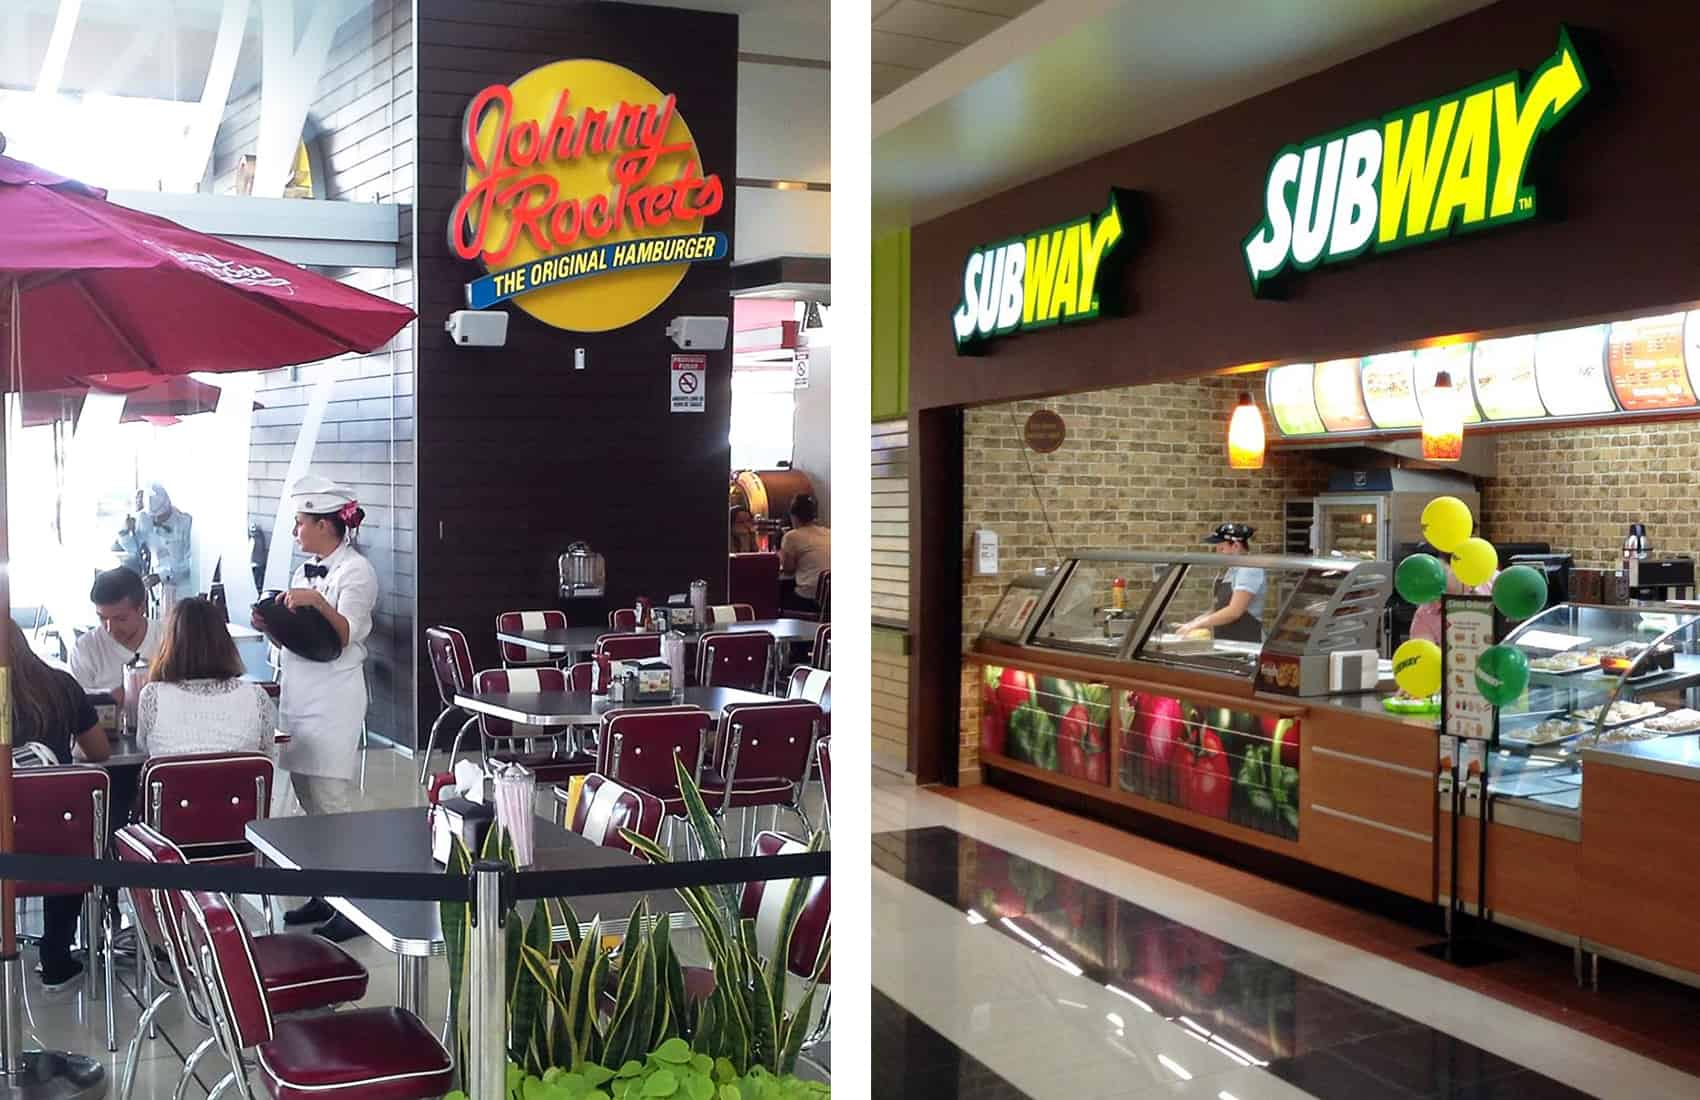 Johnny Rockets and Subway restaurants